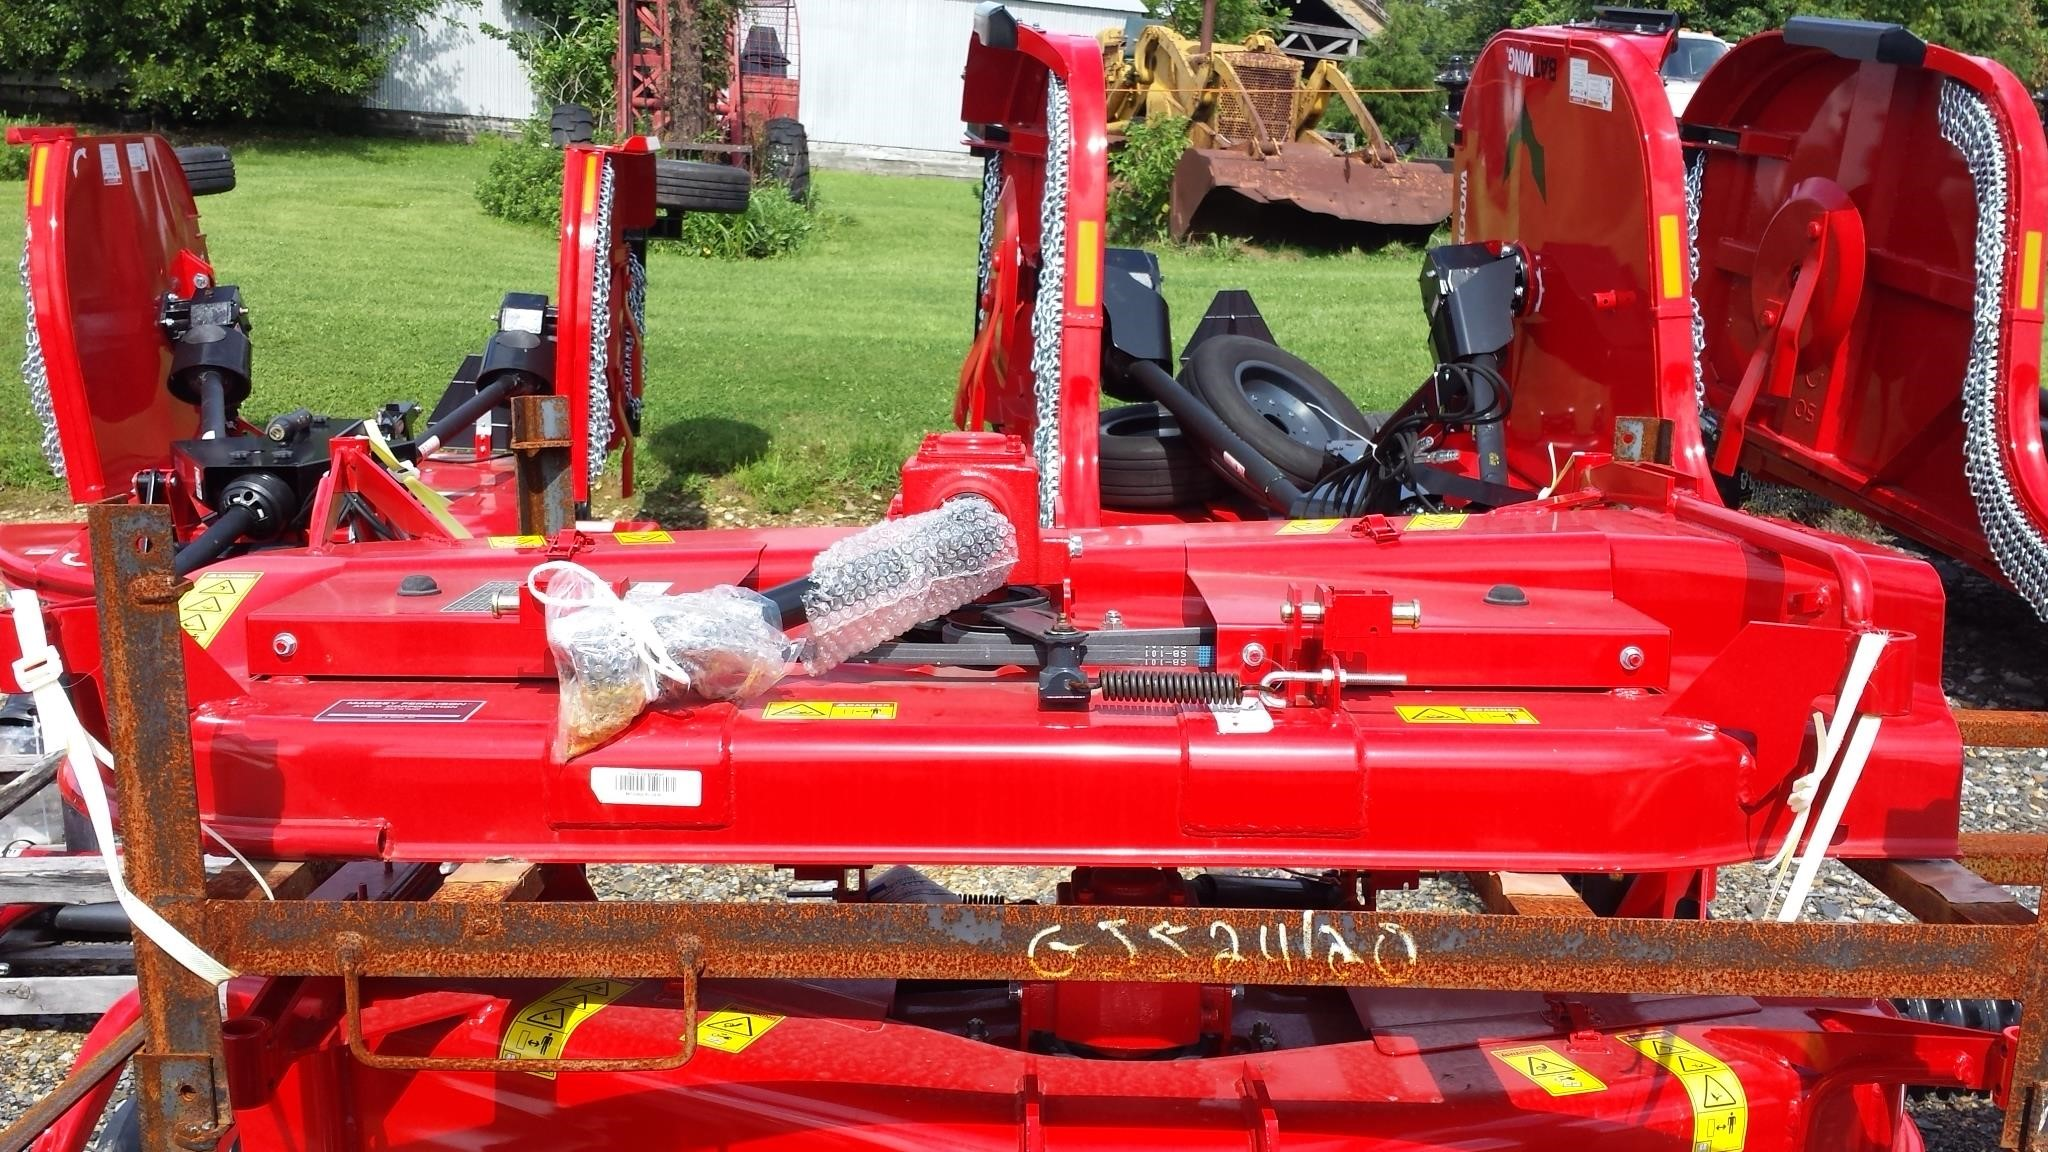 2019 Massey Ferguson 2320 Lawn and Garden